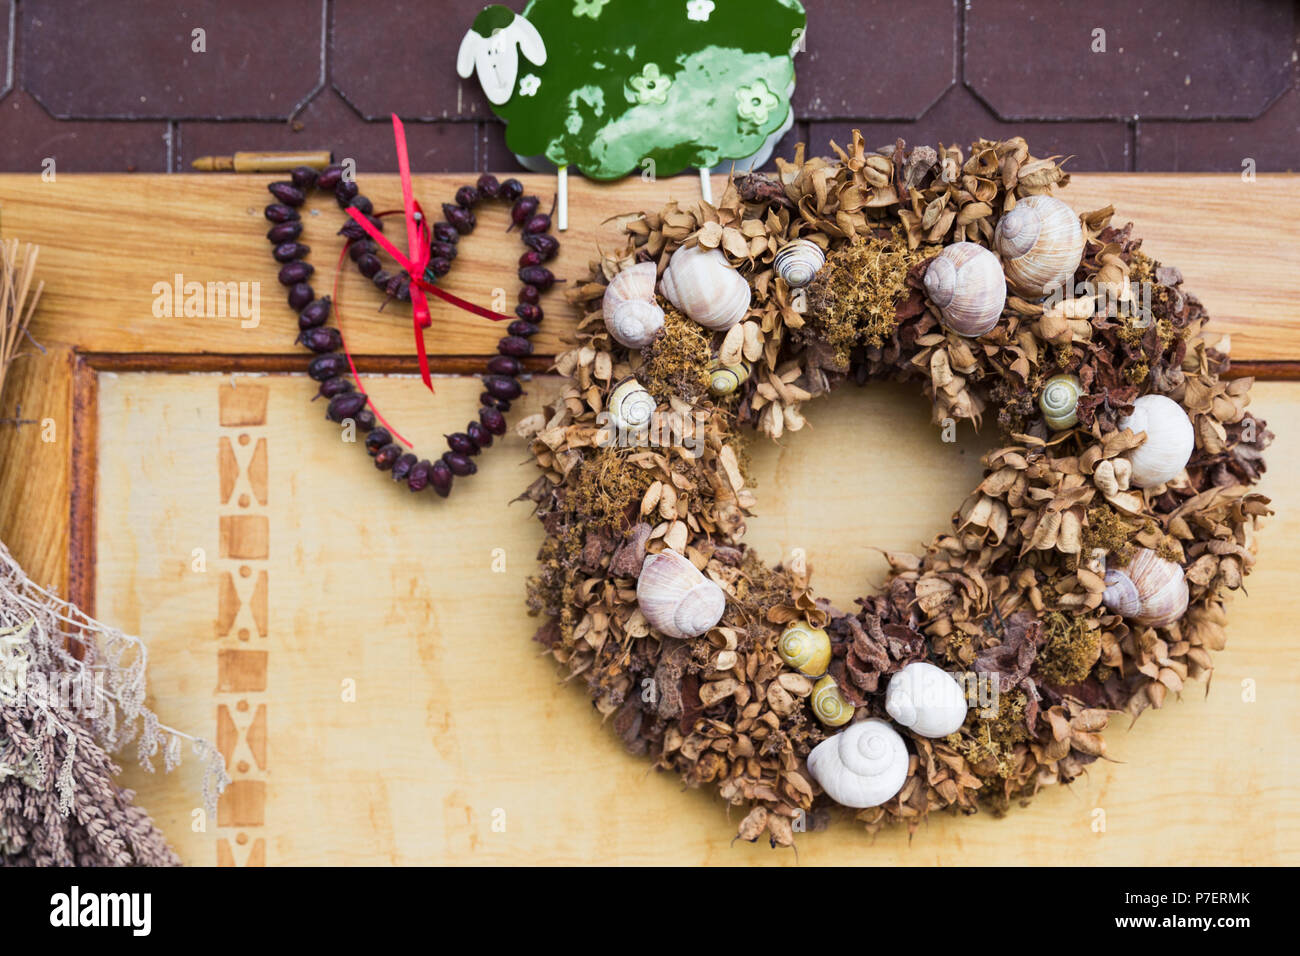 Home made Dried Flowers Crown and Snails Decorations - Stock Image